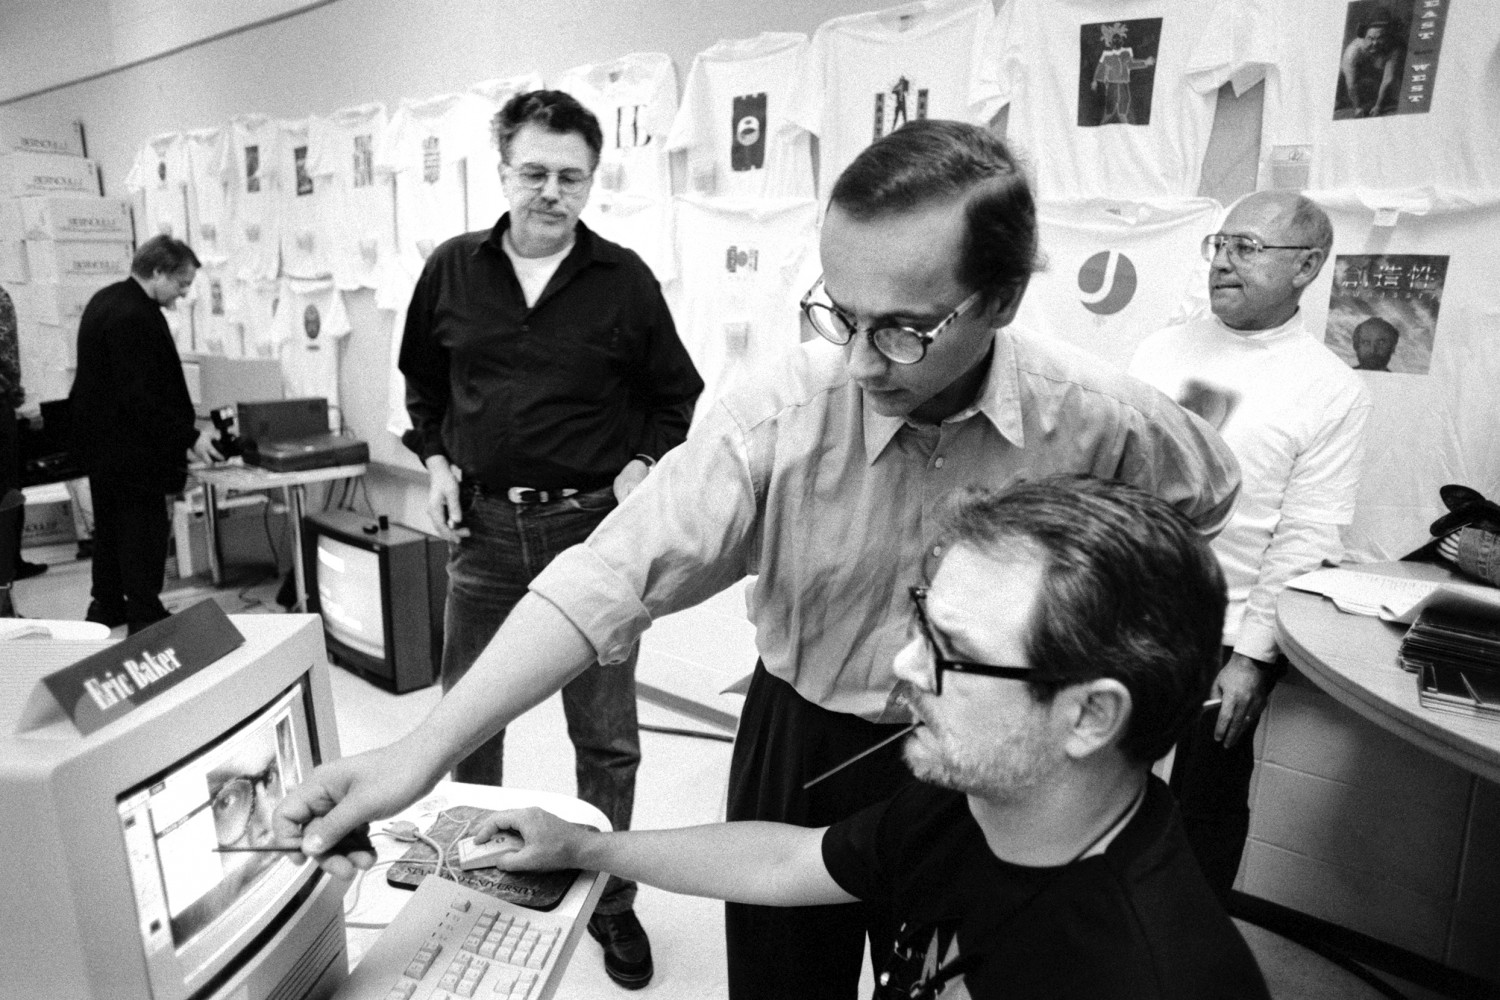 Celebrate 25 Years of Photoshop with This Fascinating Peek Into the Program's Past